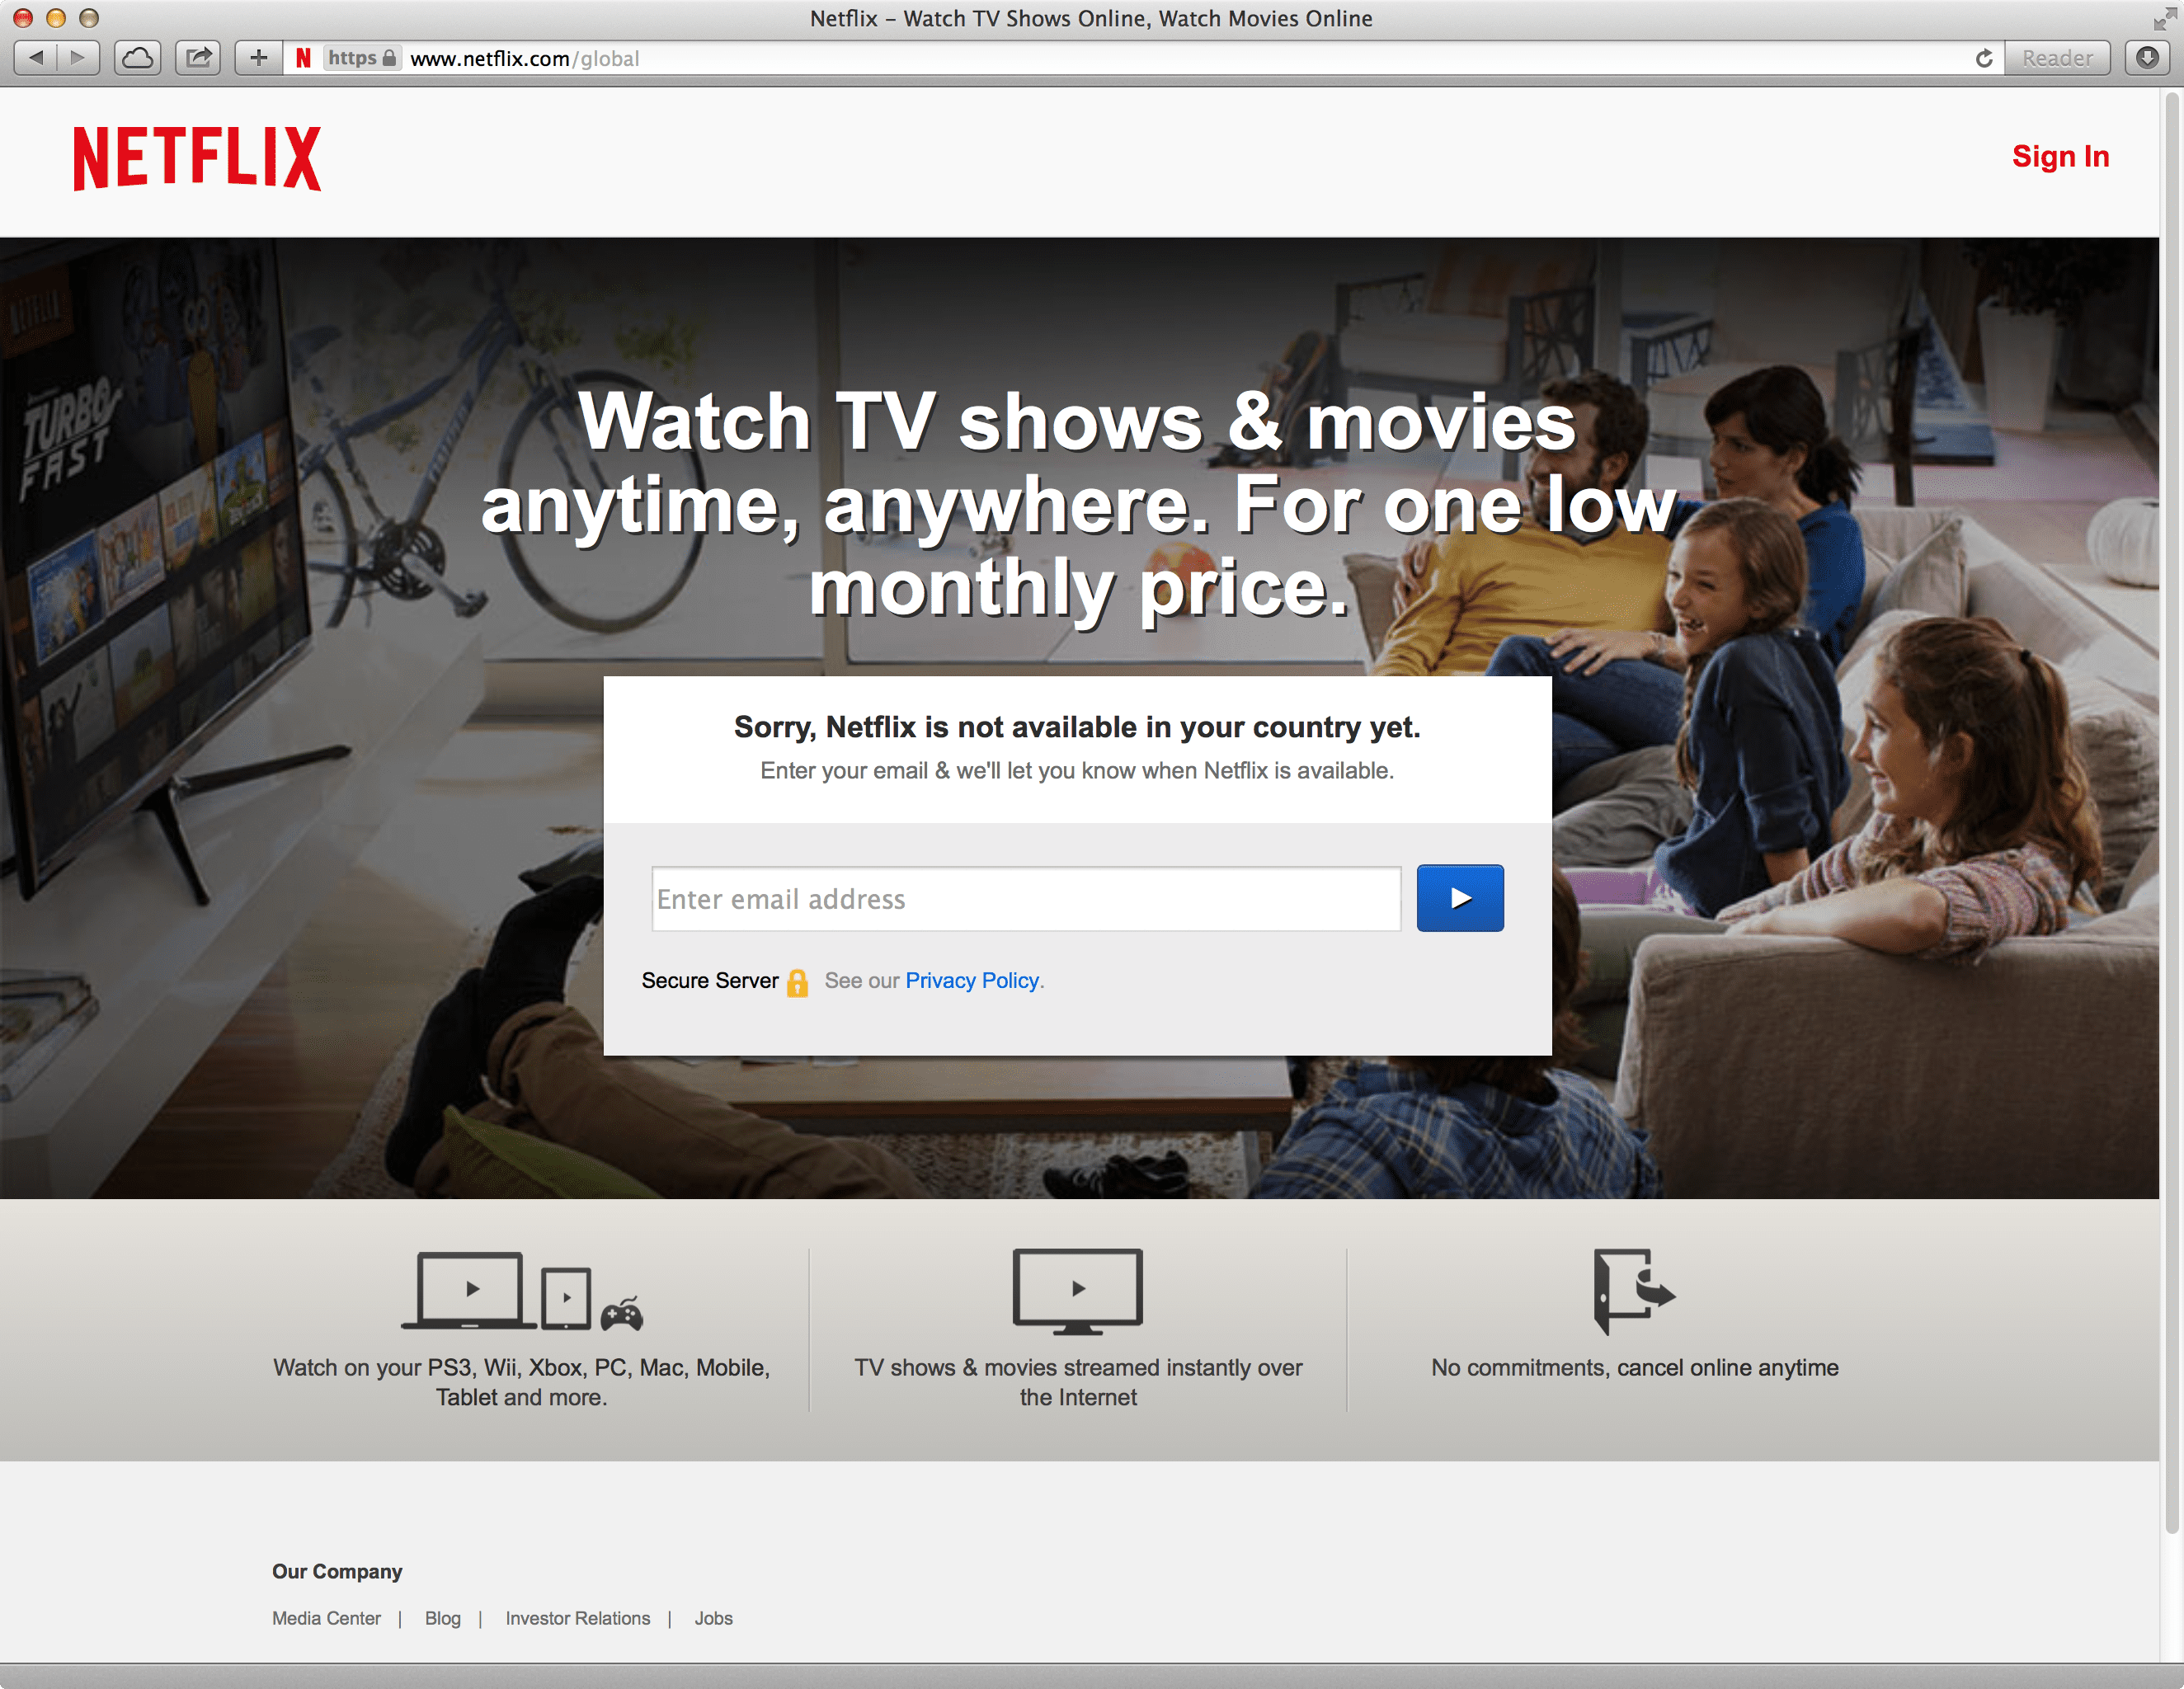 Netflix aanbod error: Netflix is not available in your country yet